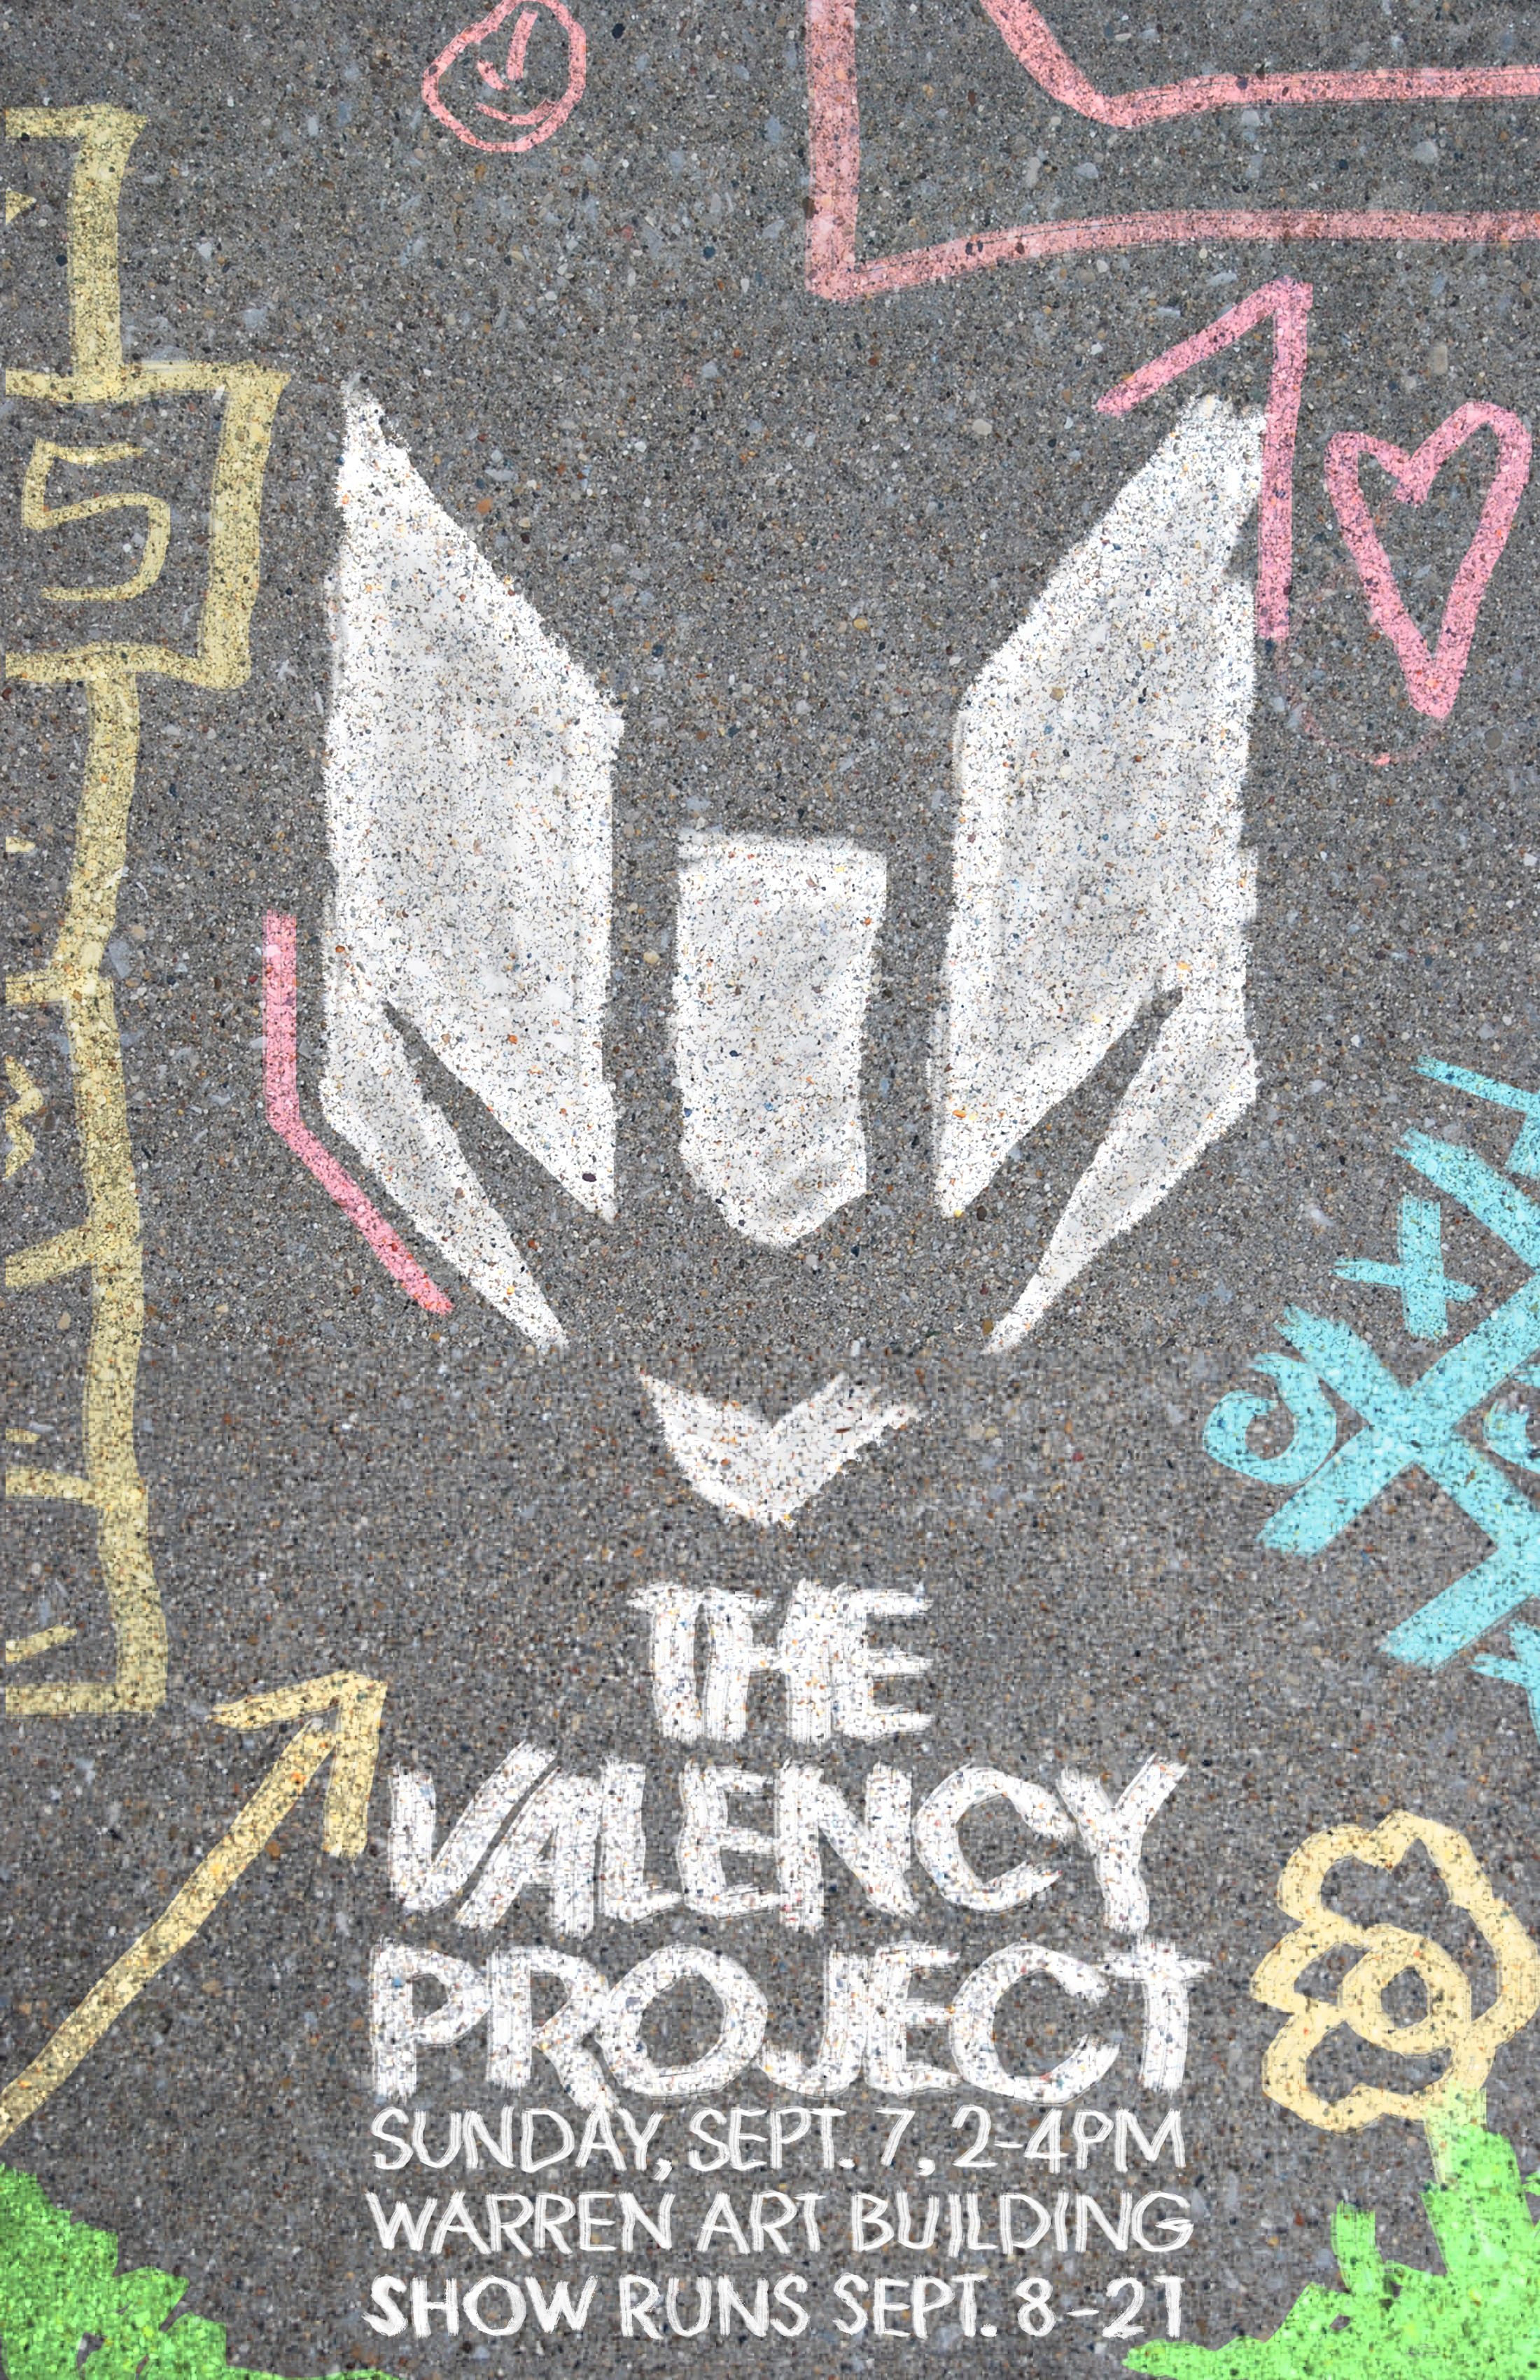 Sidewalk Chalk - Family and Consumer Sciences (Blye-Poteat) - Representative of the Child Development classes that take place here